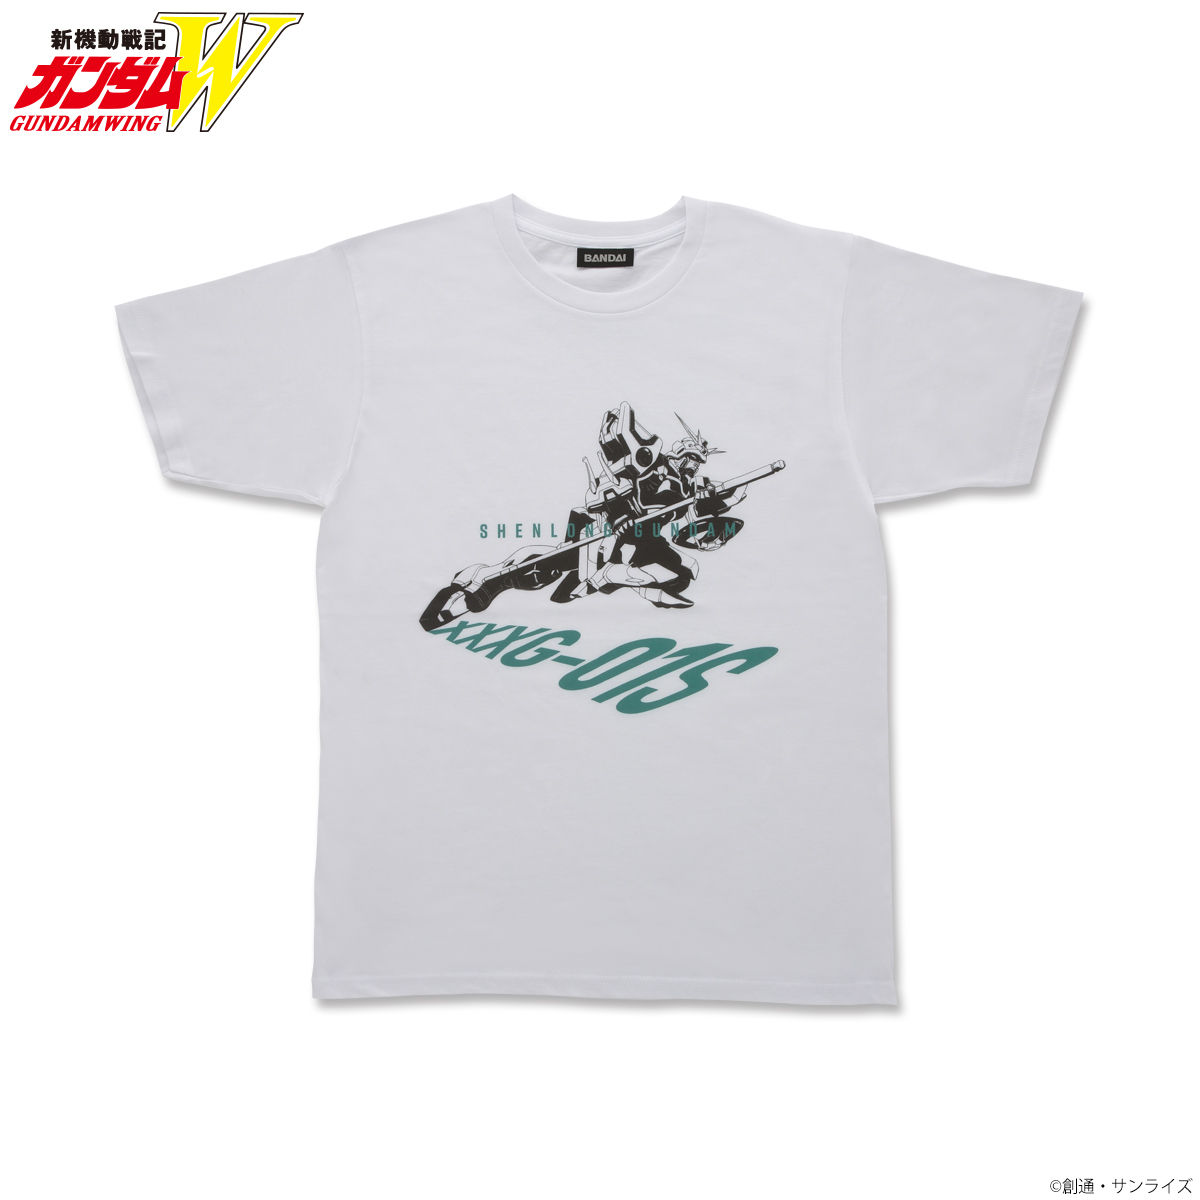 Mobile Suit Gundam Wing Monocrome Mobile Suit T-shirt